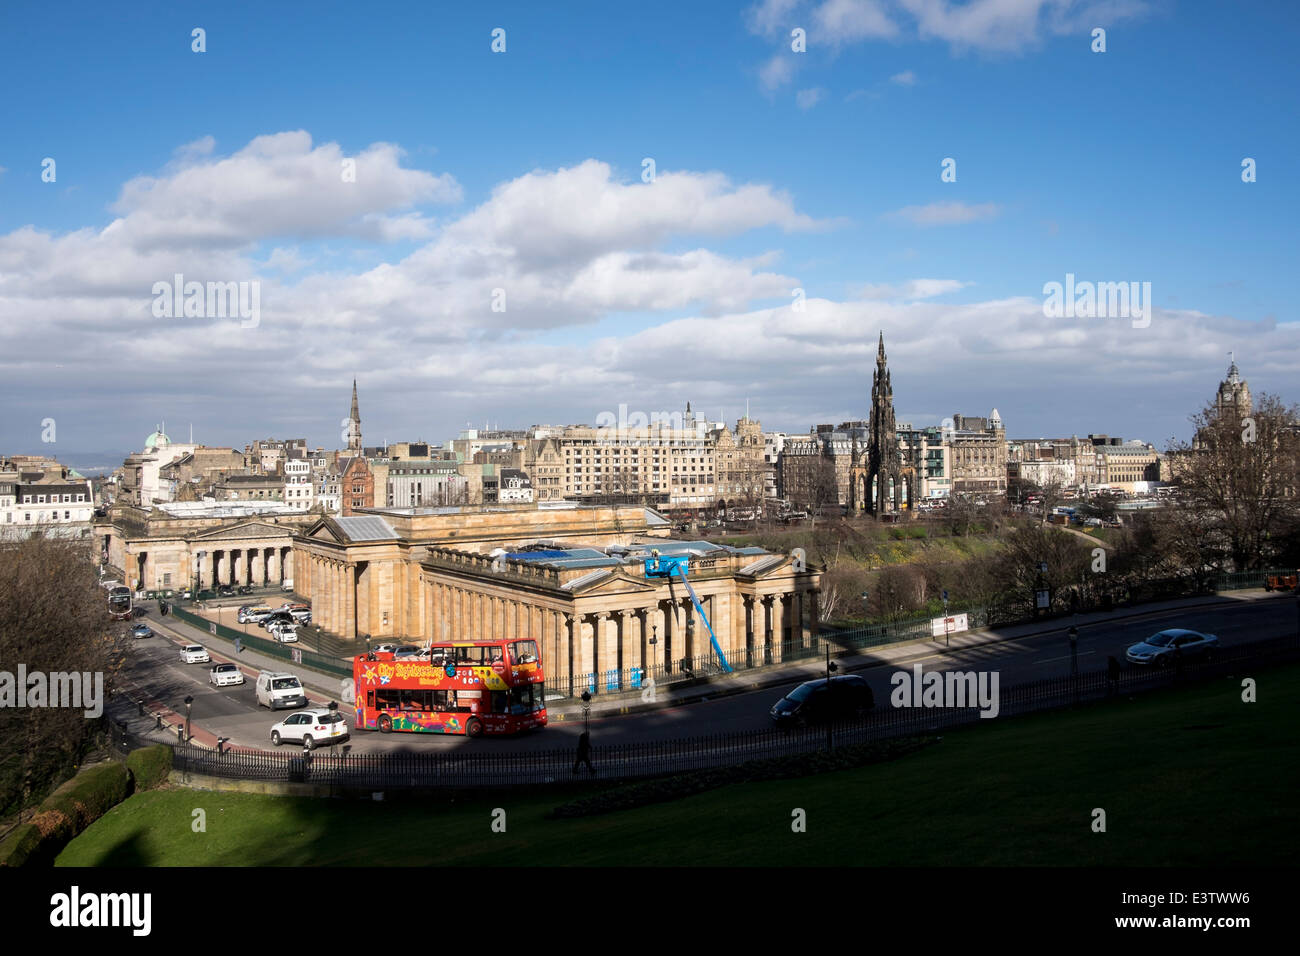 View of the Scottish National Gallery from above, Edinburgh Stock Photo